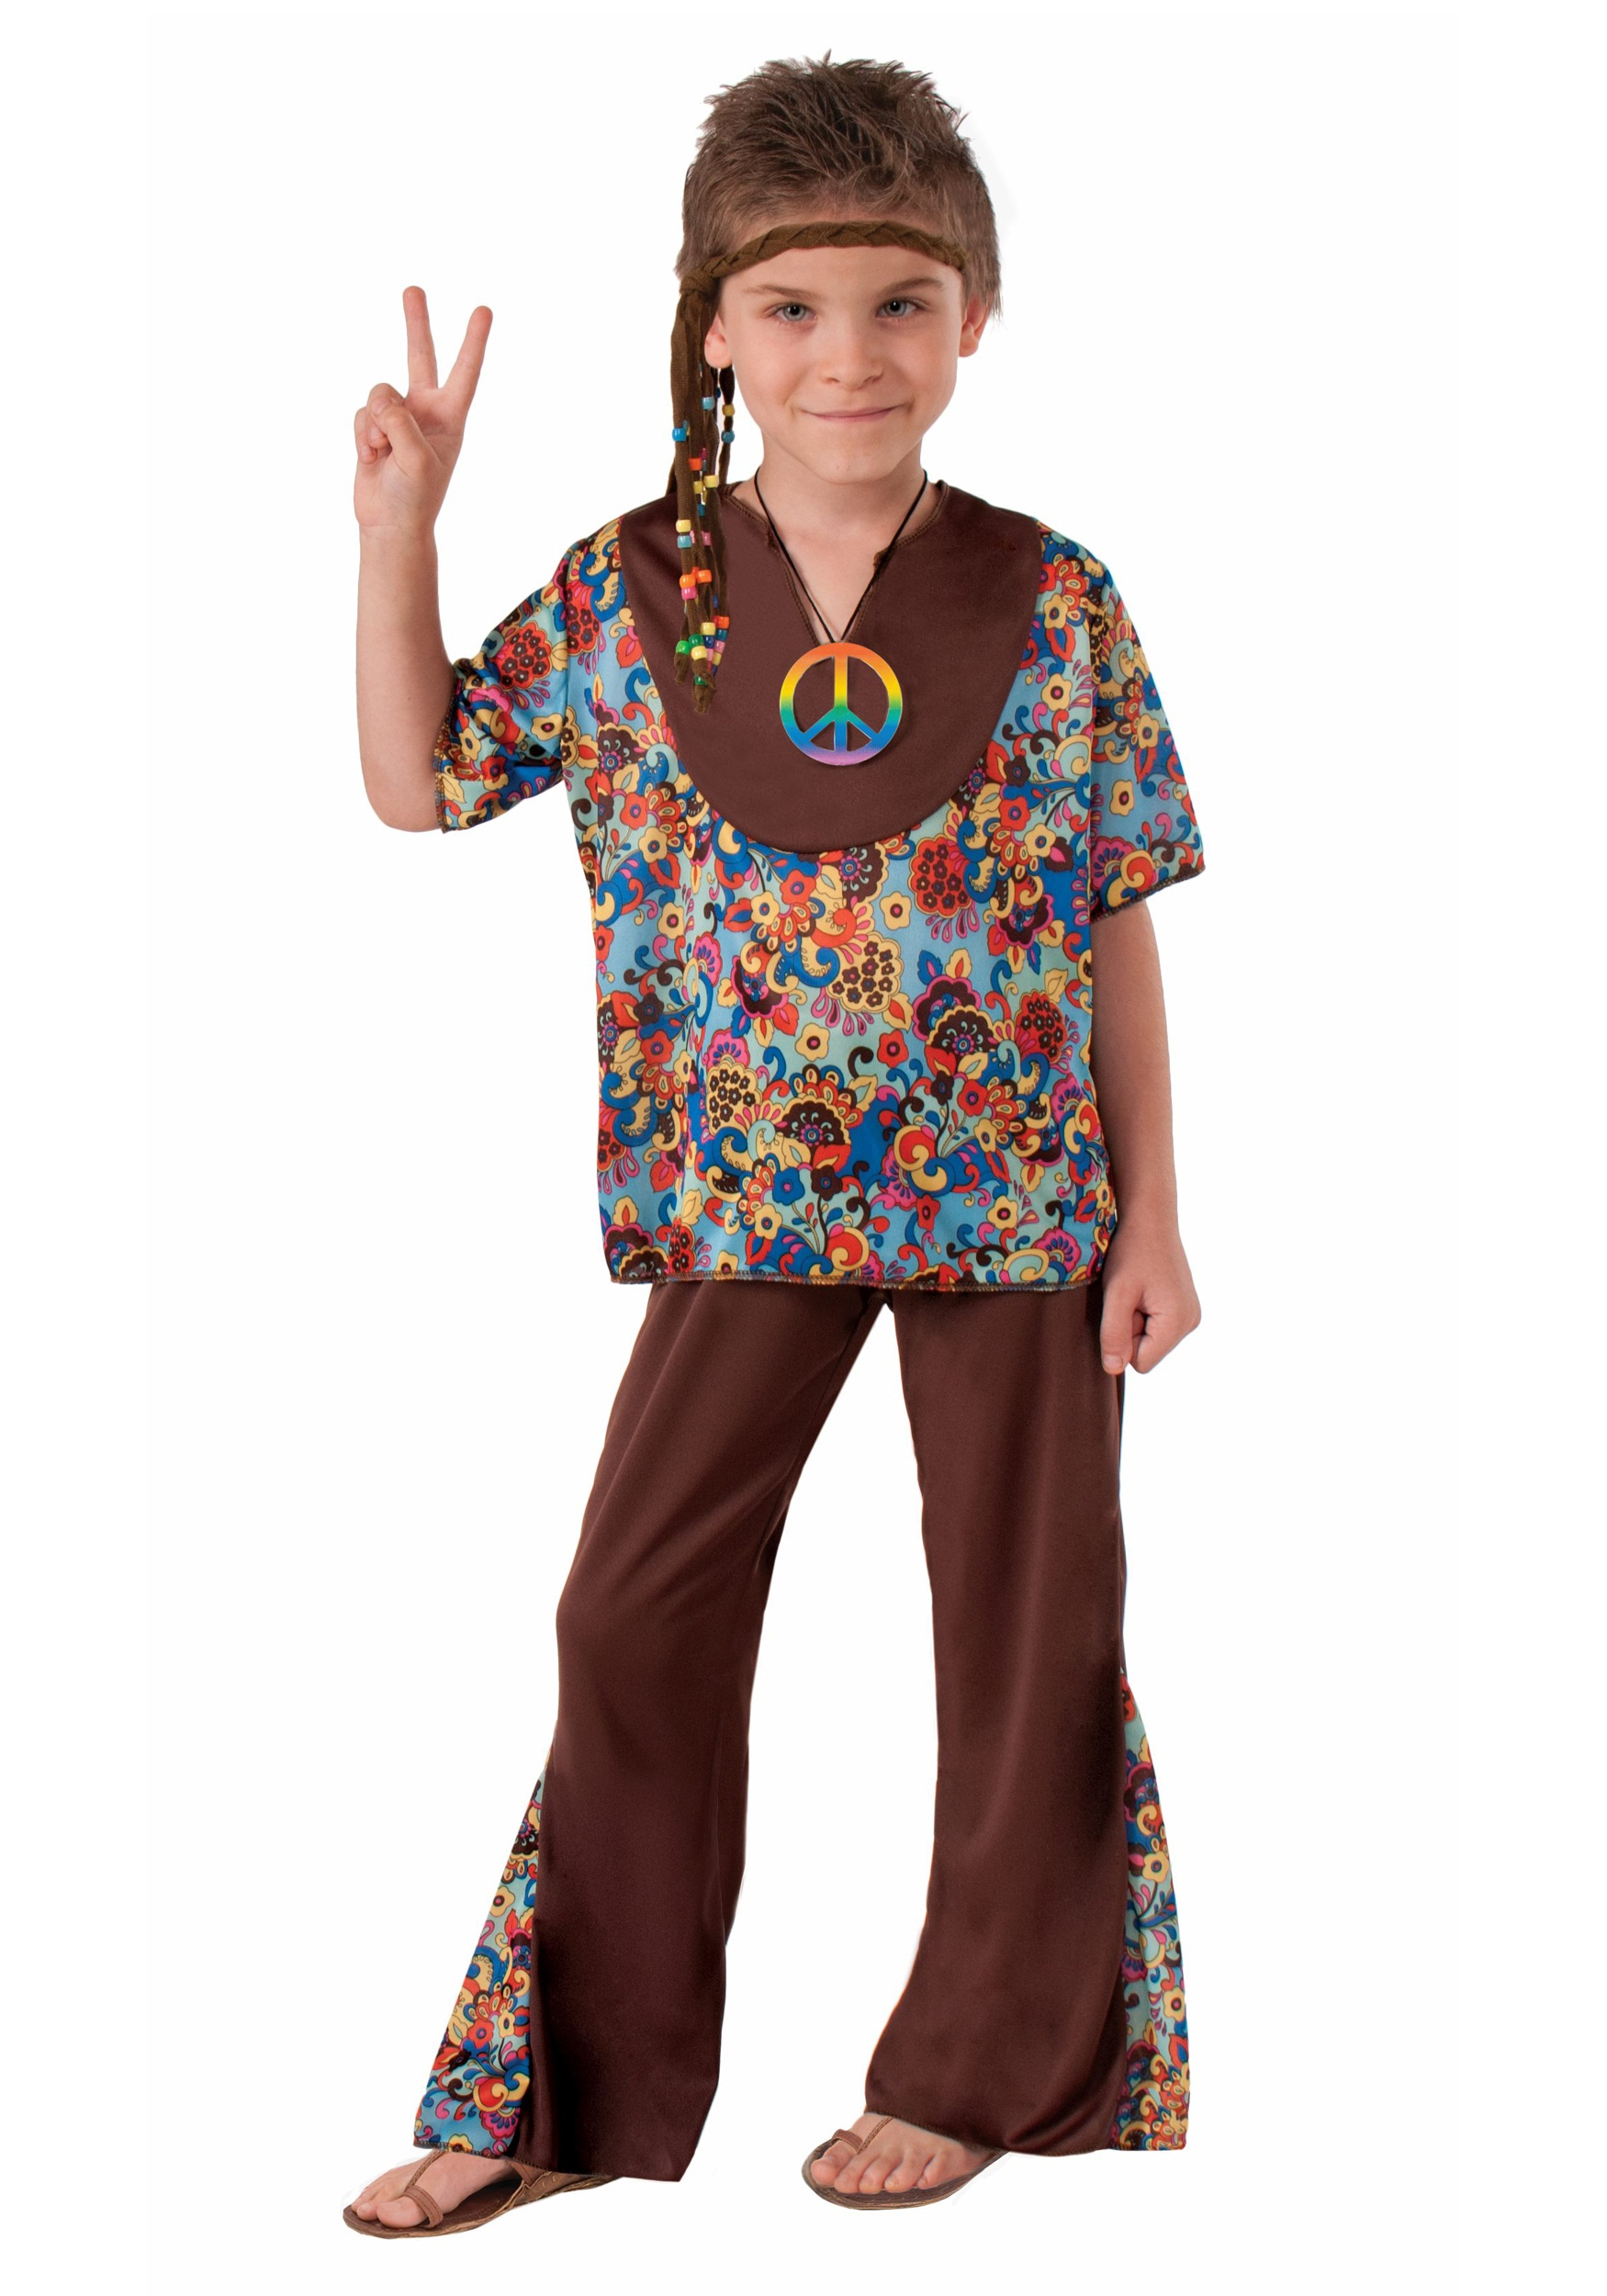 Hippie Boy Costume  sc 1 st  Halloween Costumes & Hippie Boy Costume - Halloween Costumes